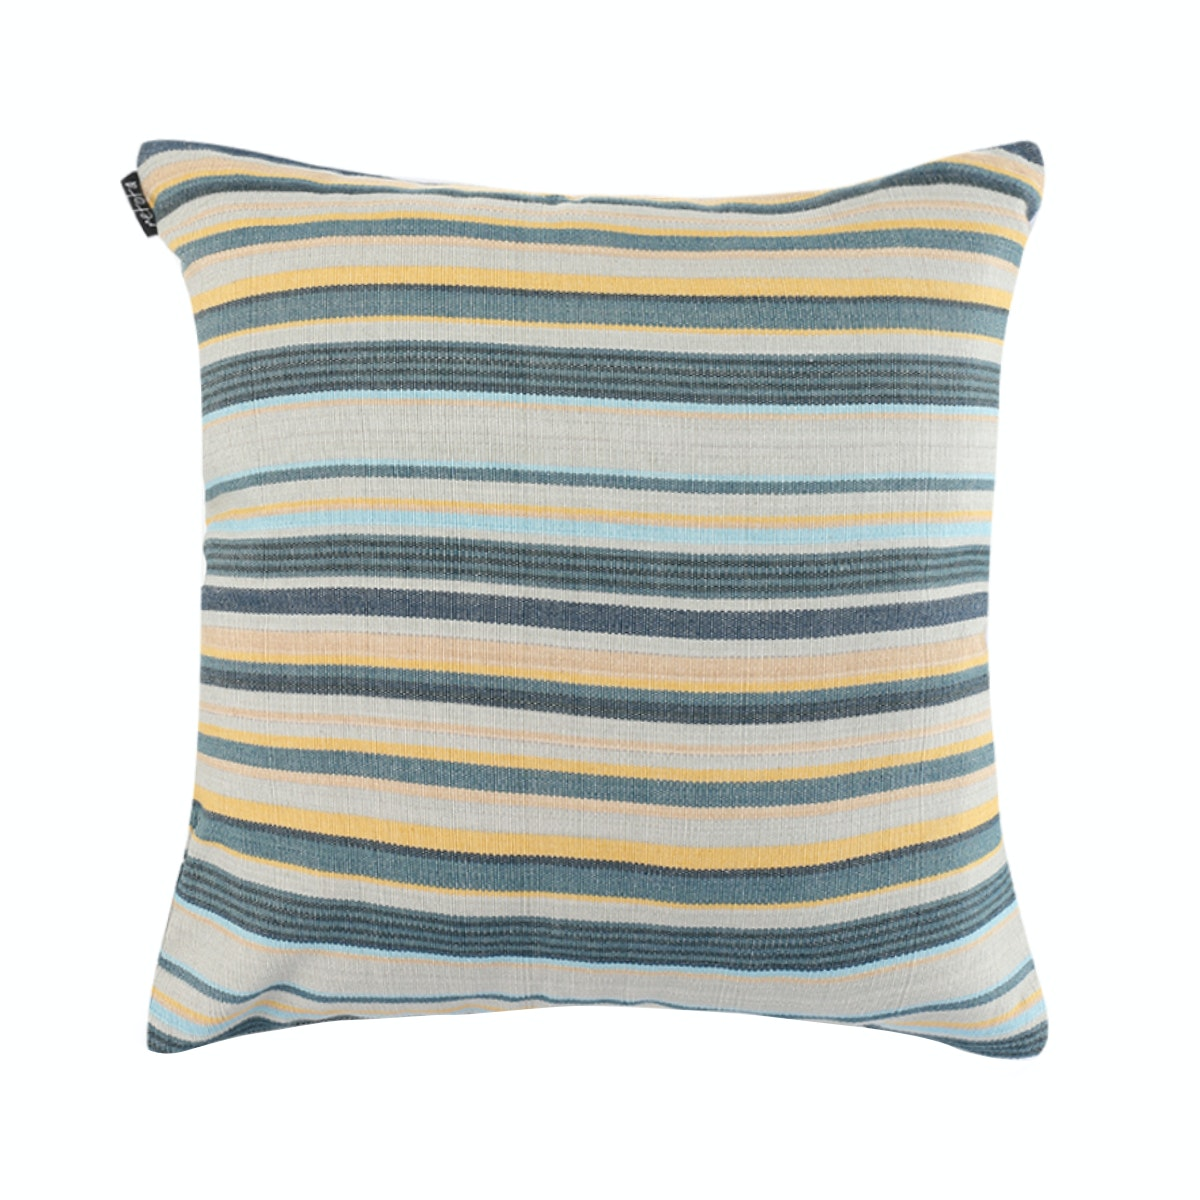 Retota Cushion Cover 50x50cm K 246